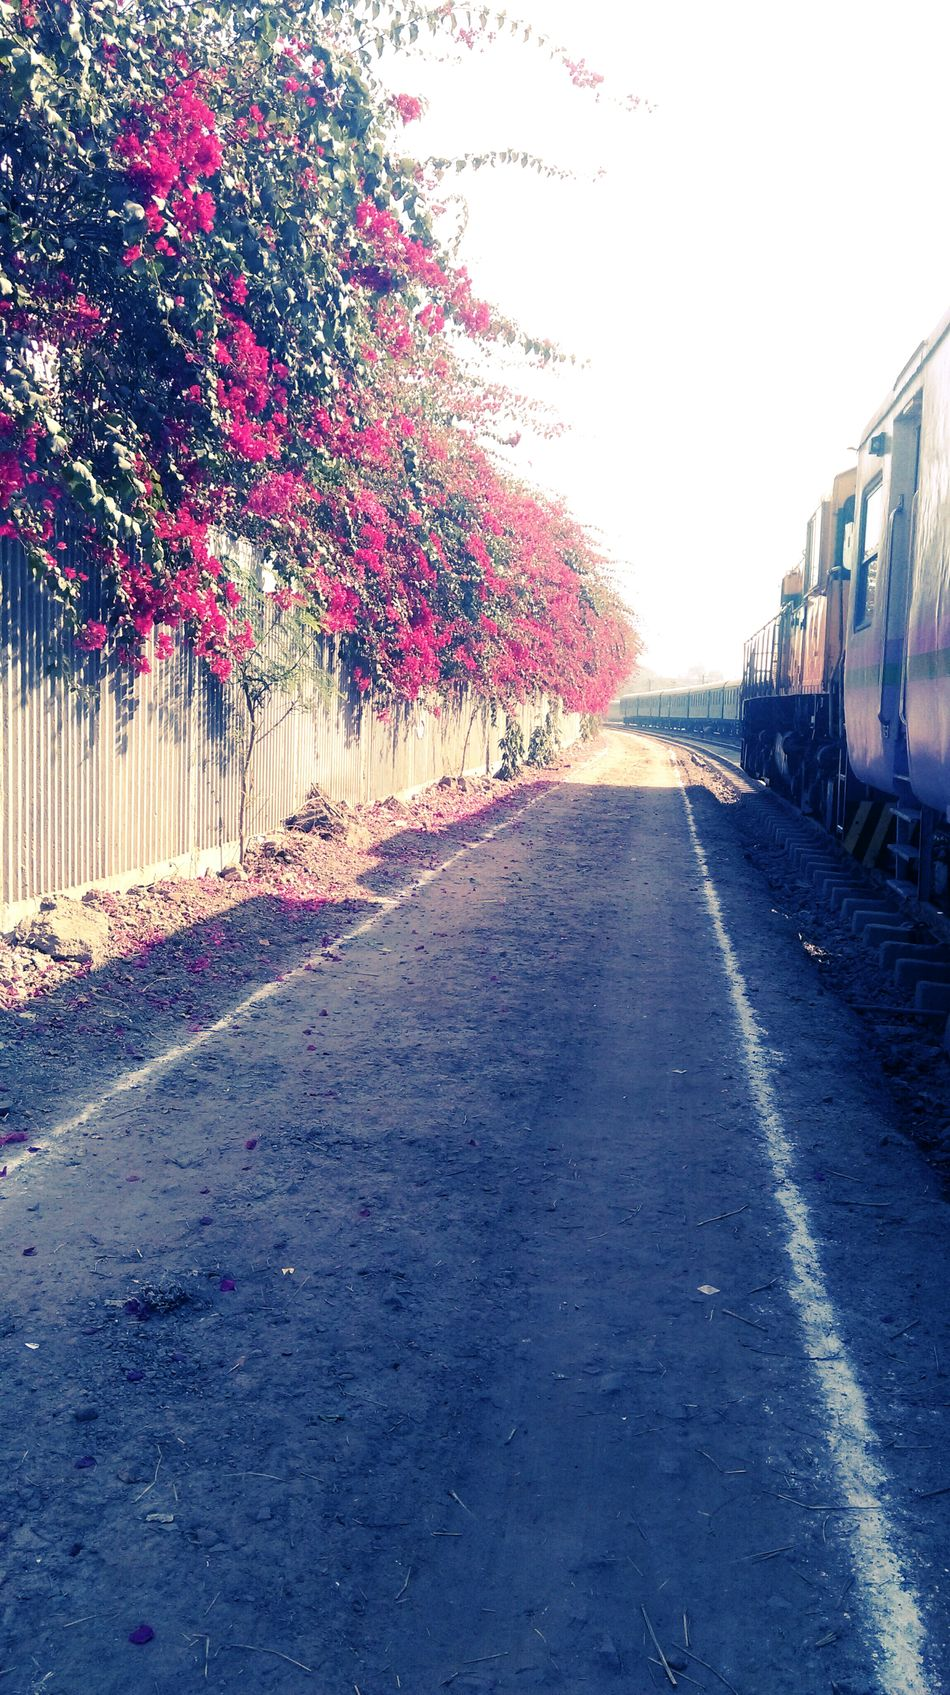 Train_of_our_world Outdoors Nature Sunlight The Way Forward Road Tree Sky Day Built Structure No People First Eyeem Photo The Secret Spaces